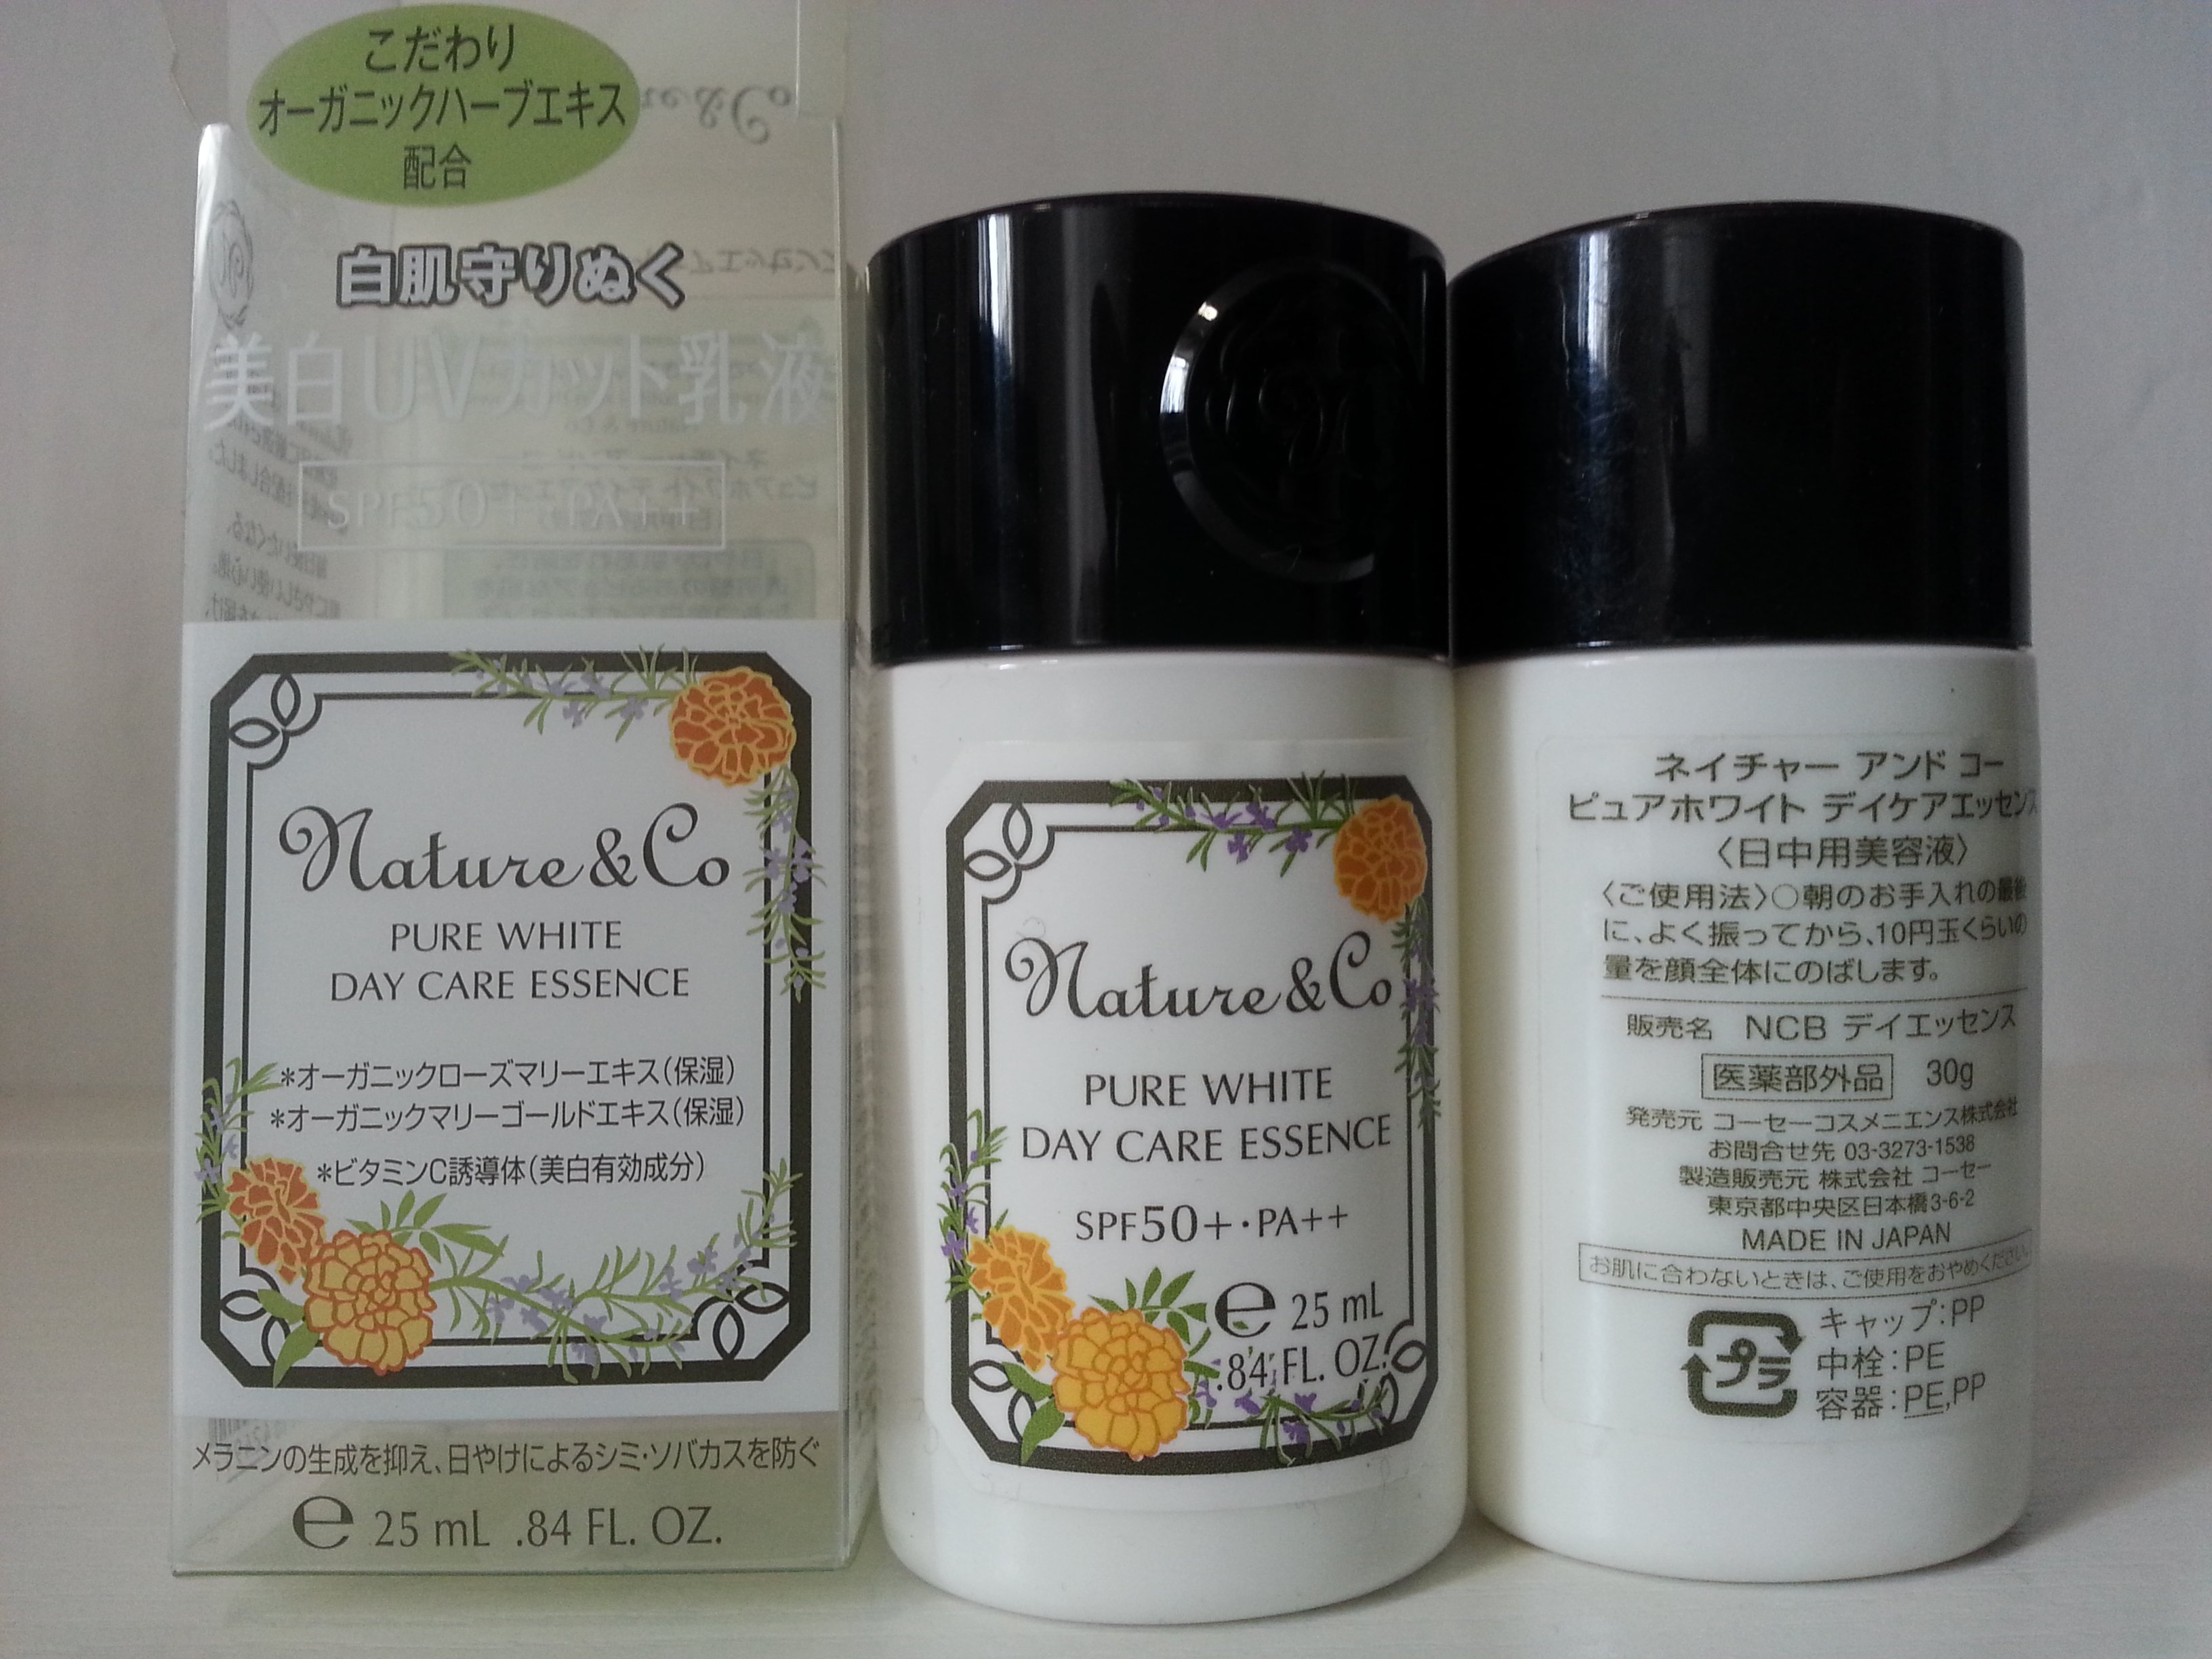 Nature & Co Pure White Day Essence SPF50+ PA++(日間美白防曬精華霜),25ml,HKD99